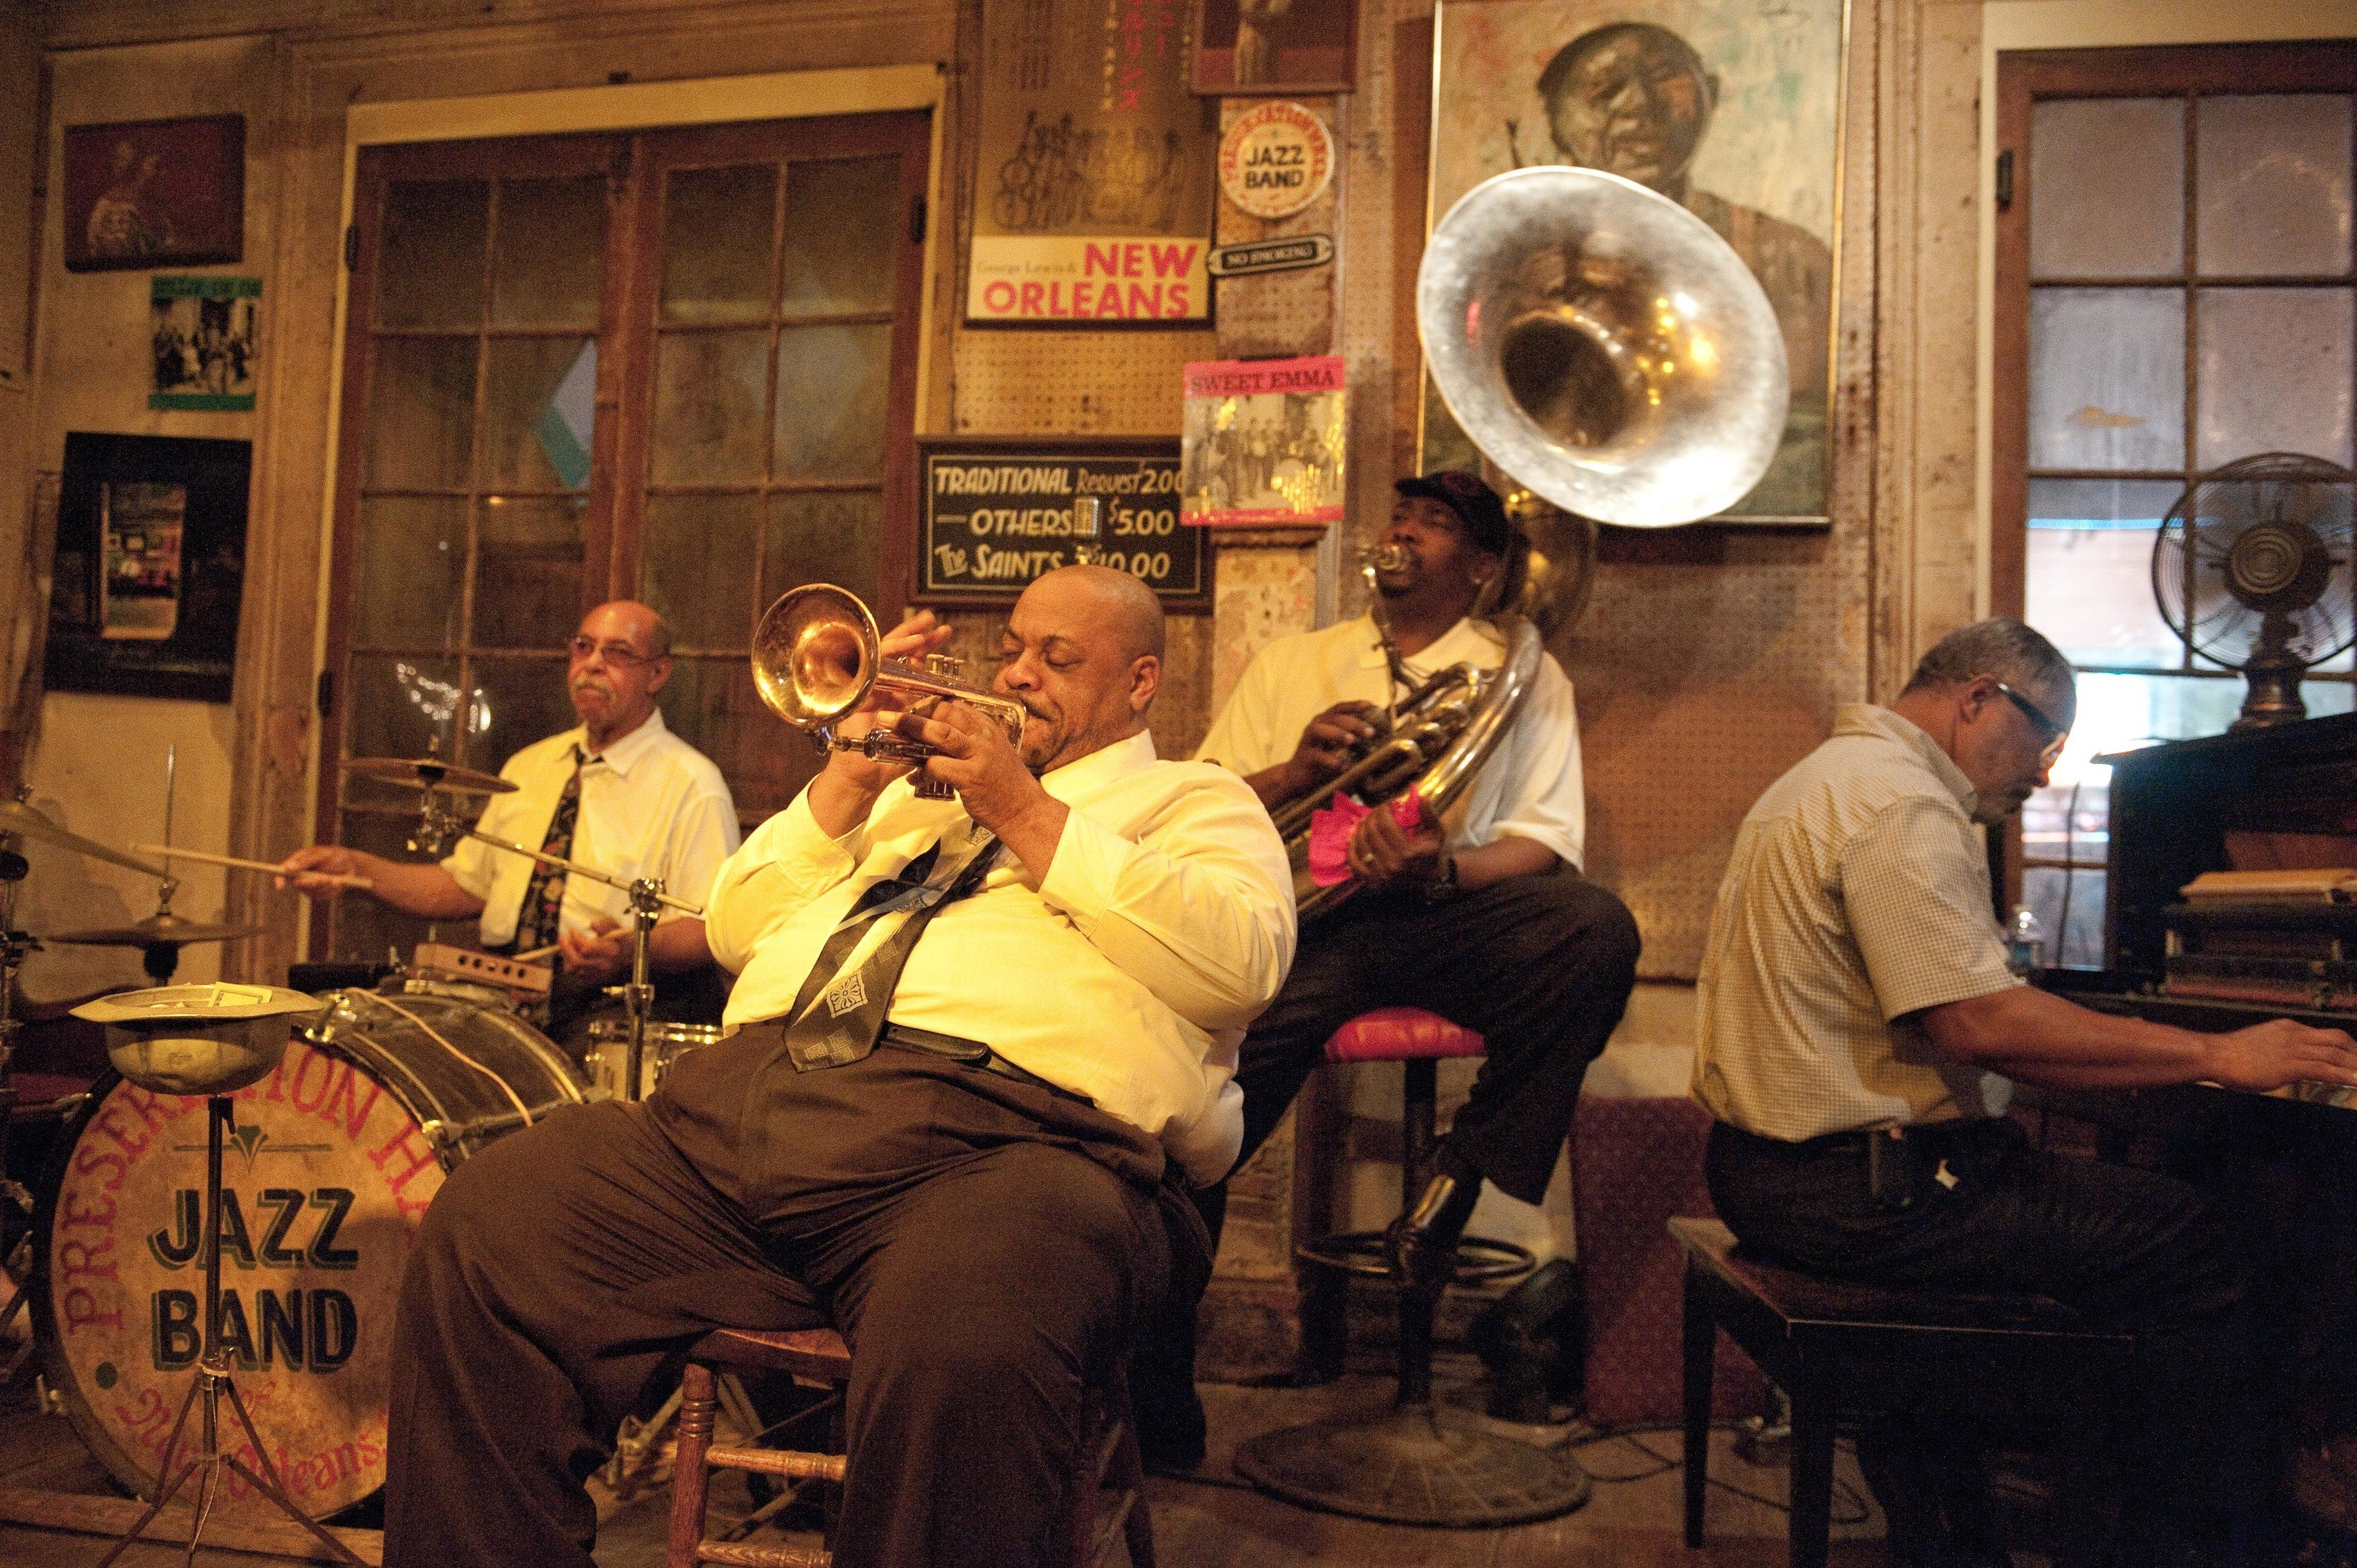 Trip Ideas Weekend Getaways Winter person sitting brass Music percussion musician drums people drum jazz Bar older concert band